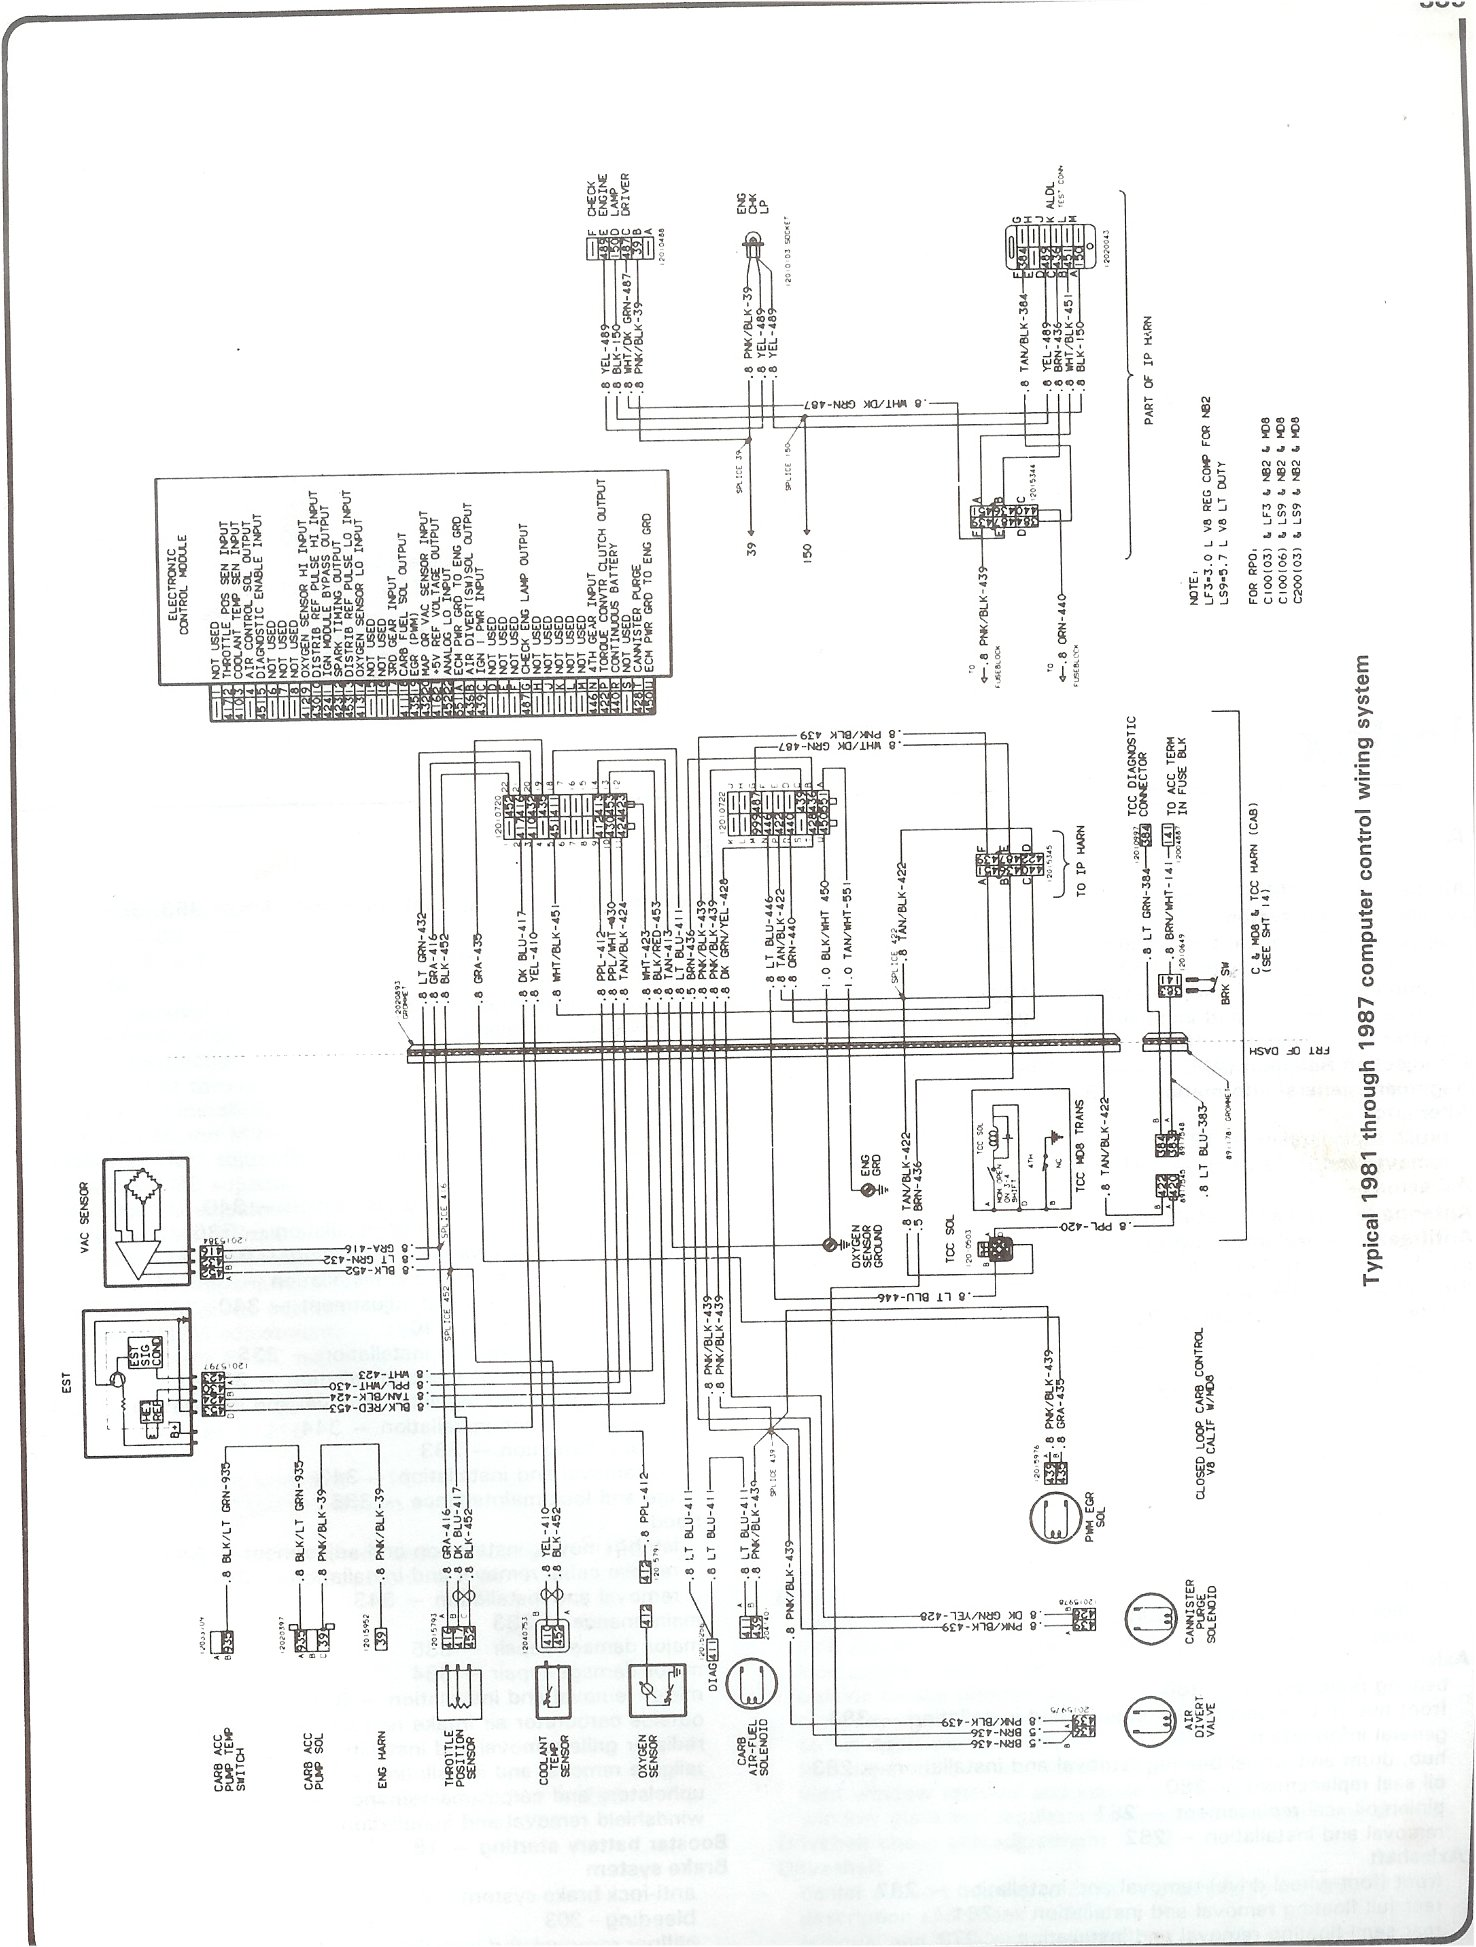 81 87_computer_control_wiring complete 73 87 wiring diagrams wiring diagram for 1970 chevy c10 at n-0.co